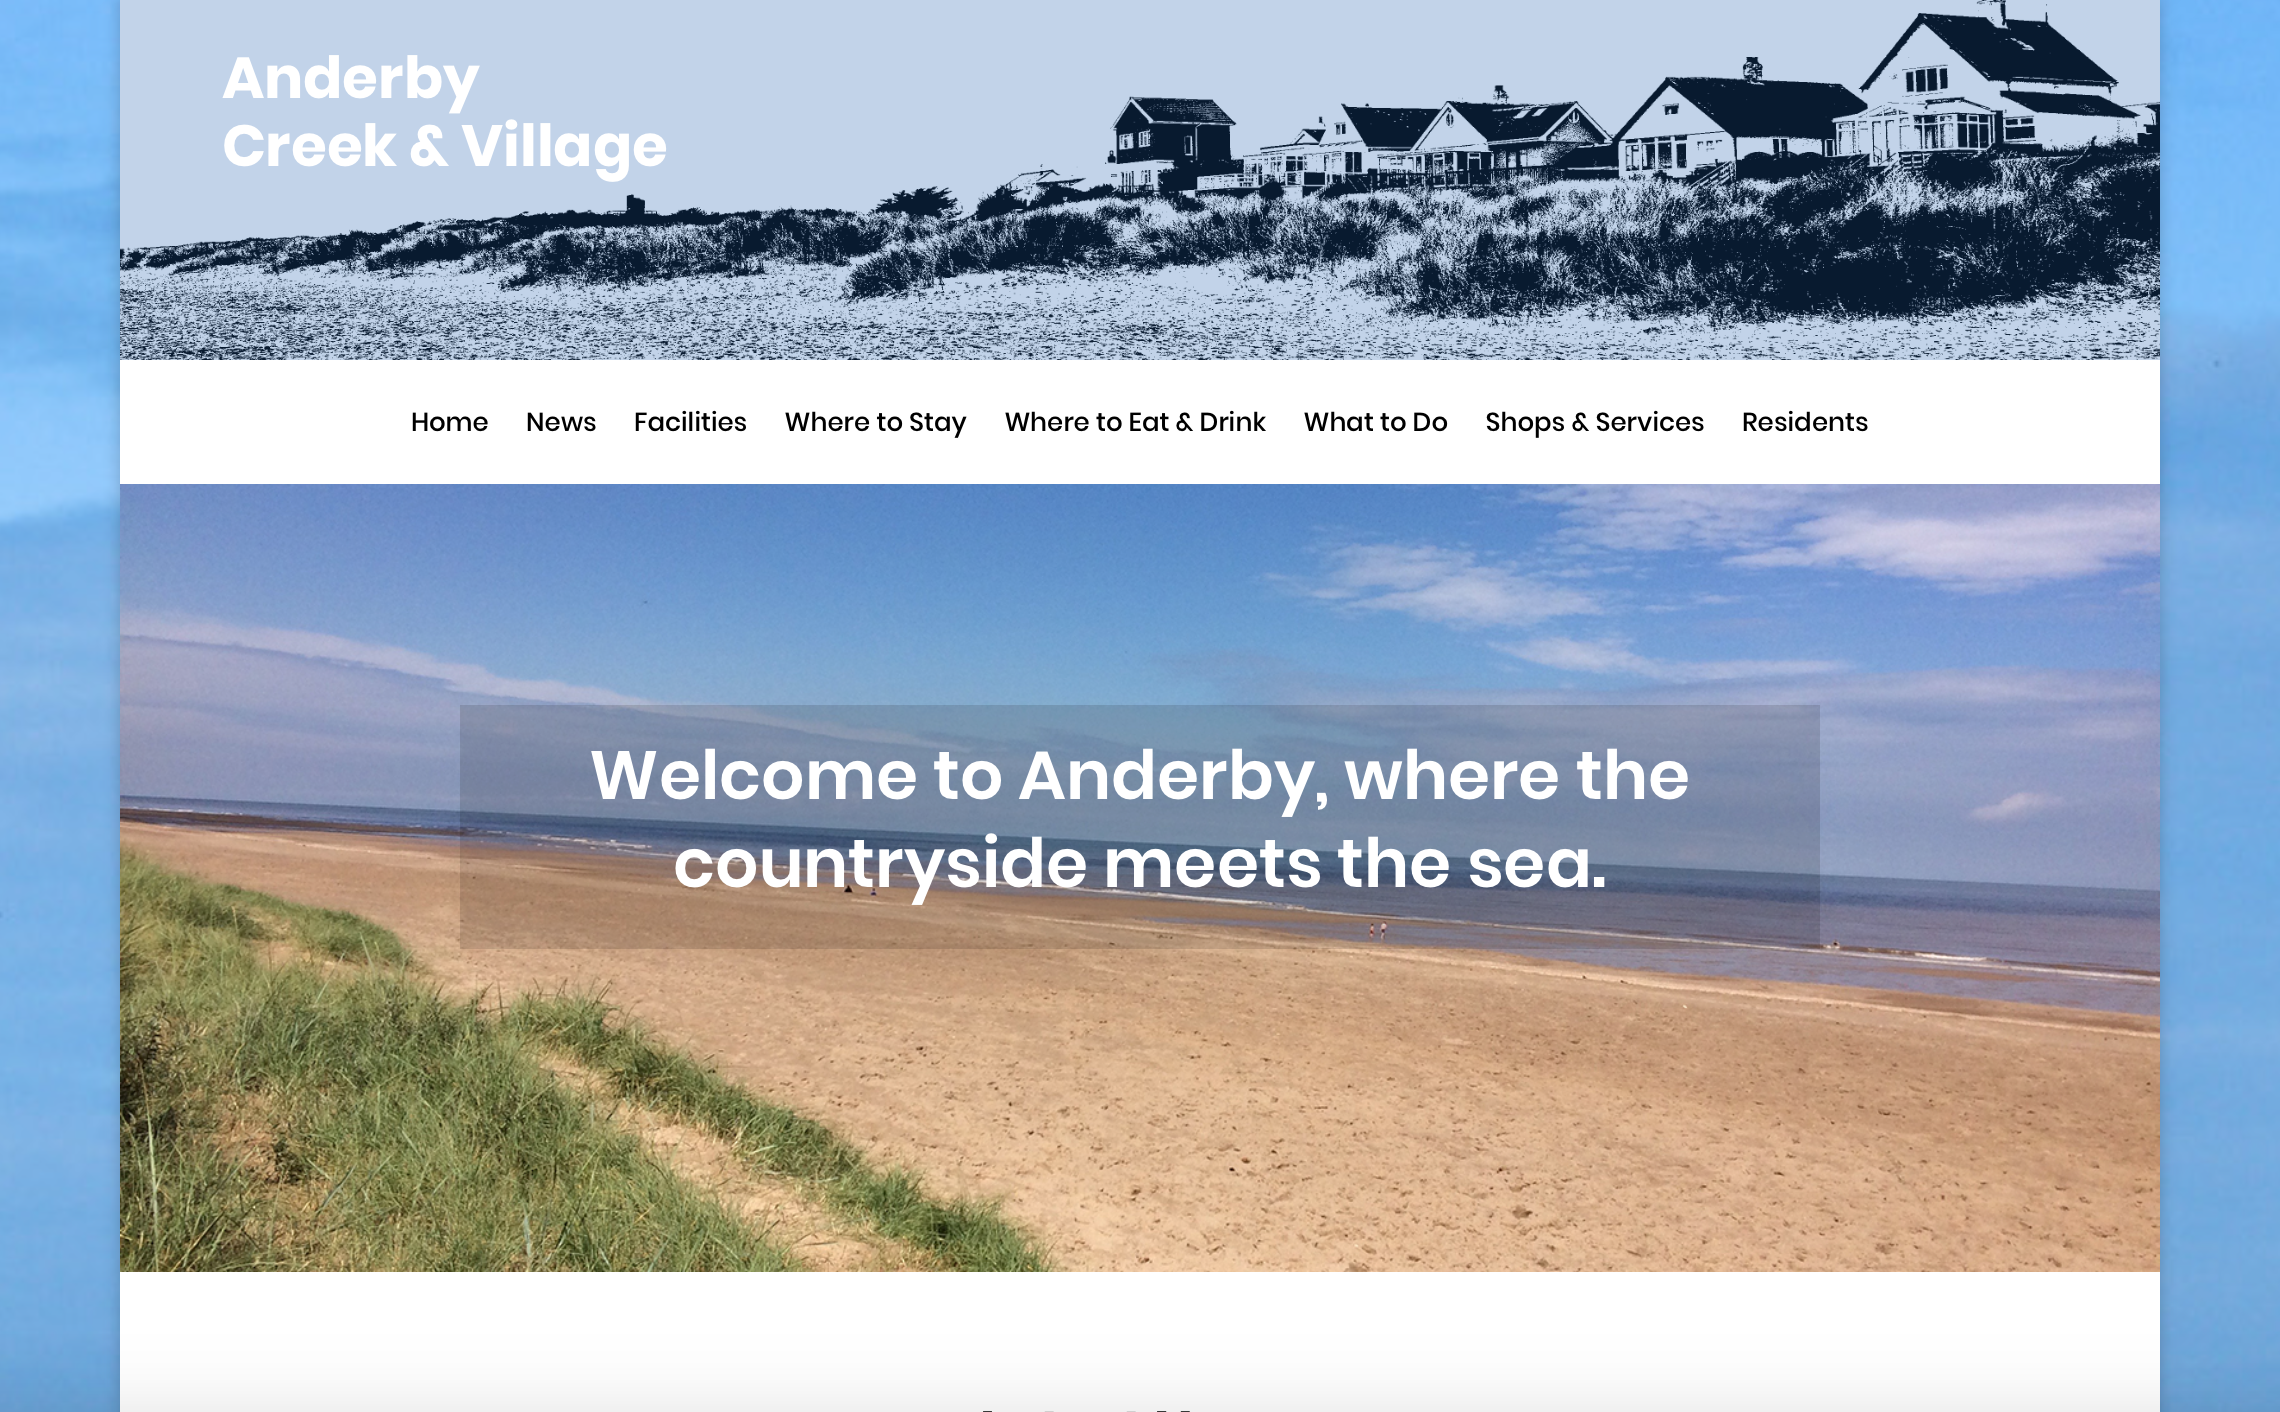 Anderby Creek and Village website